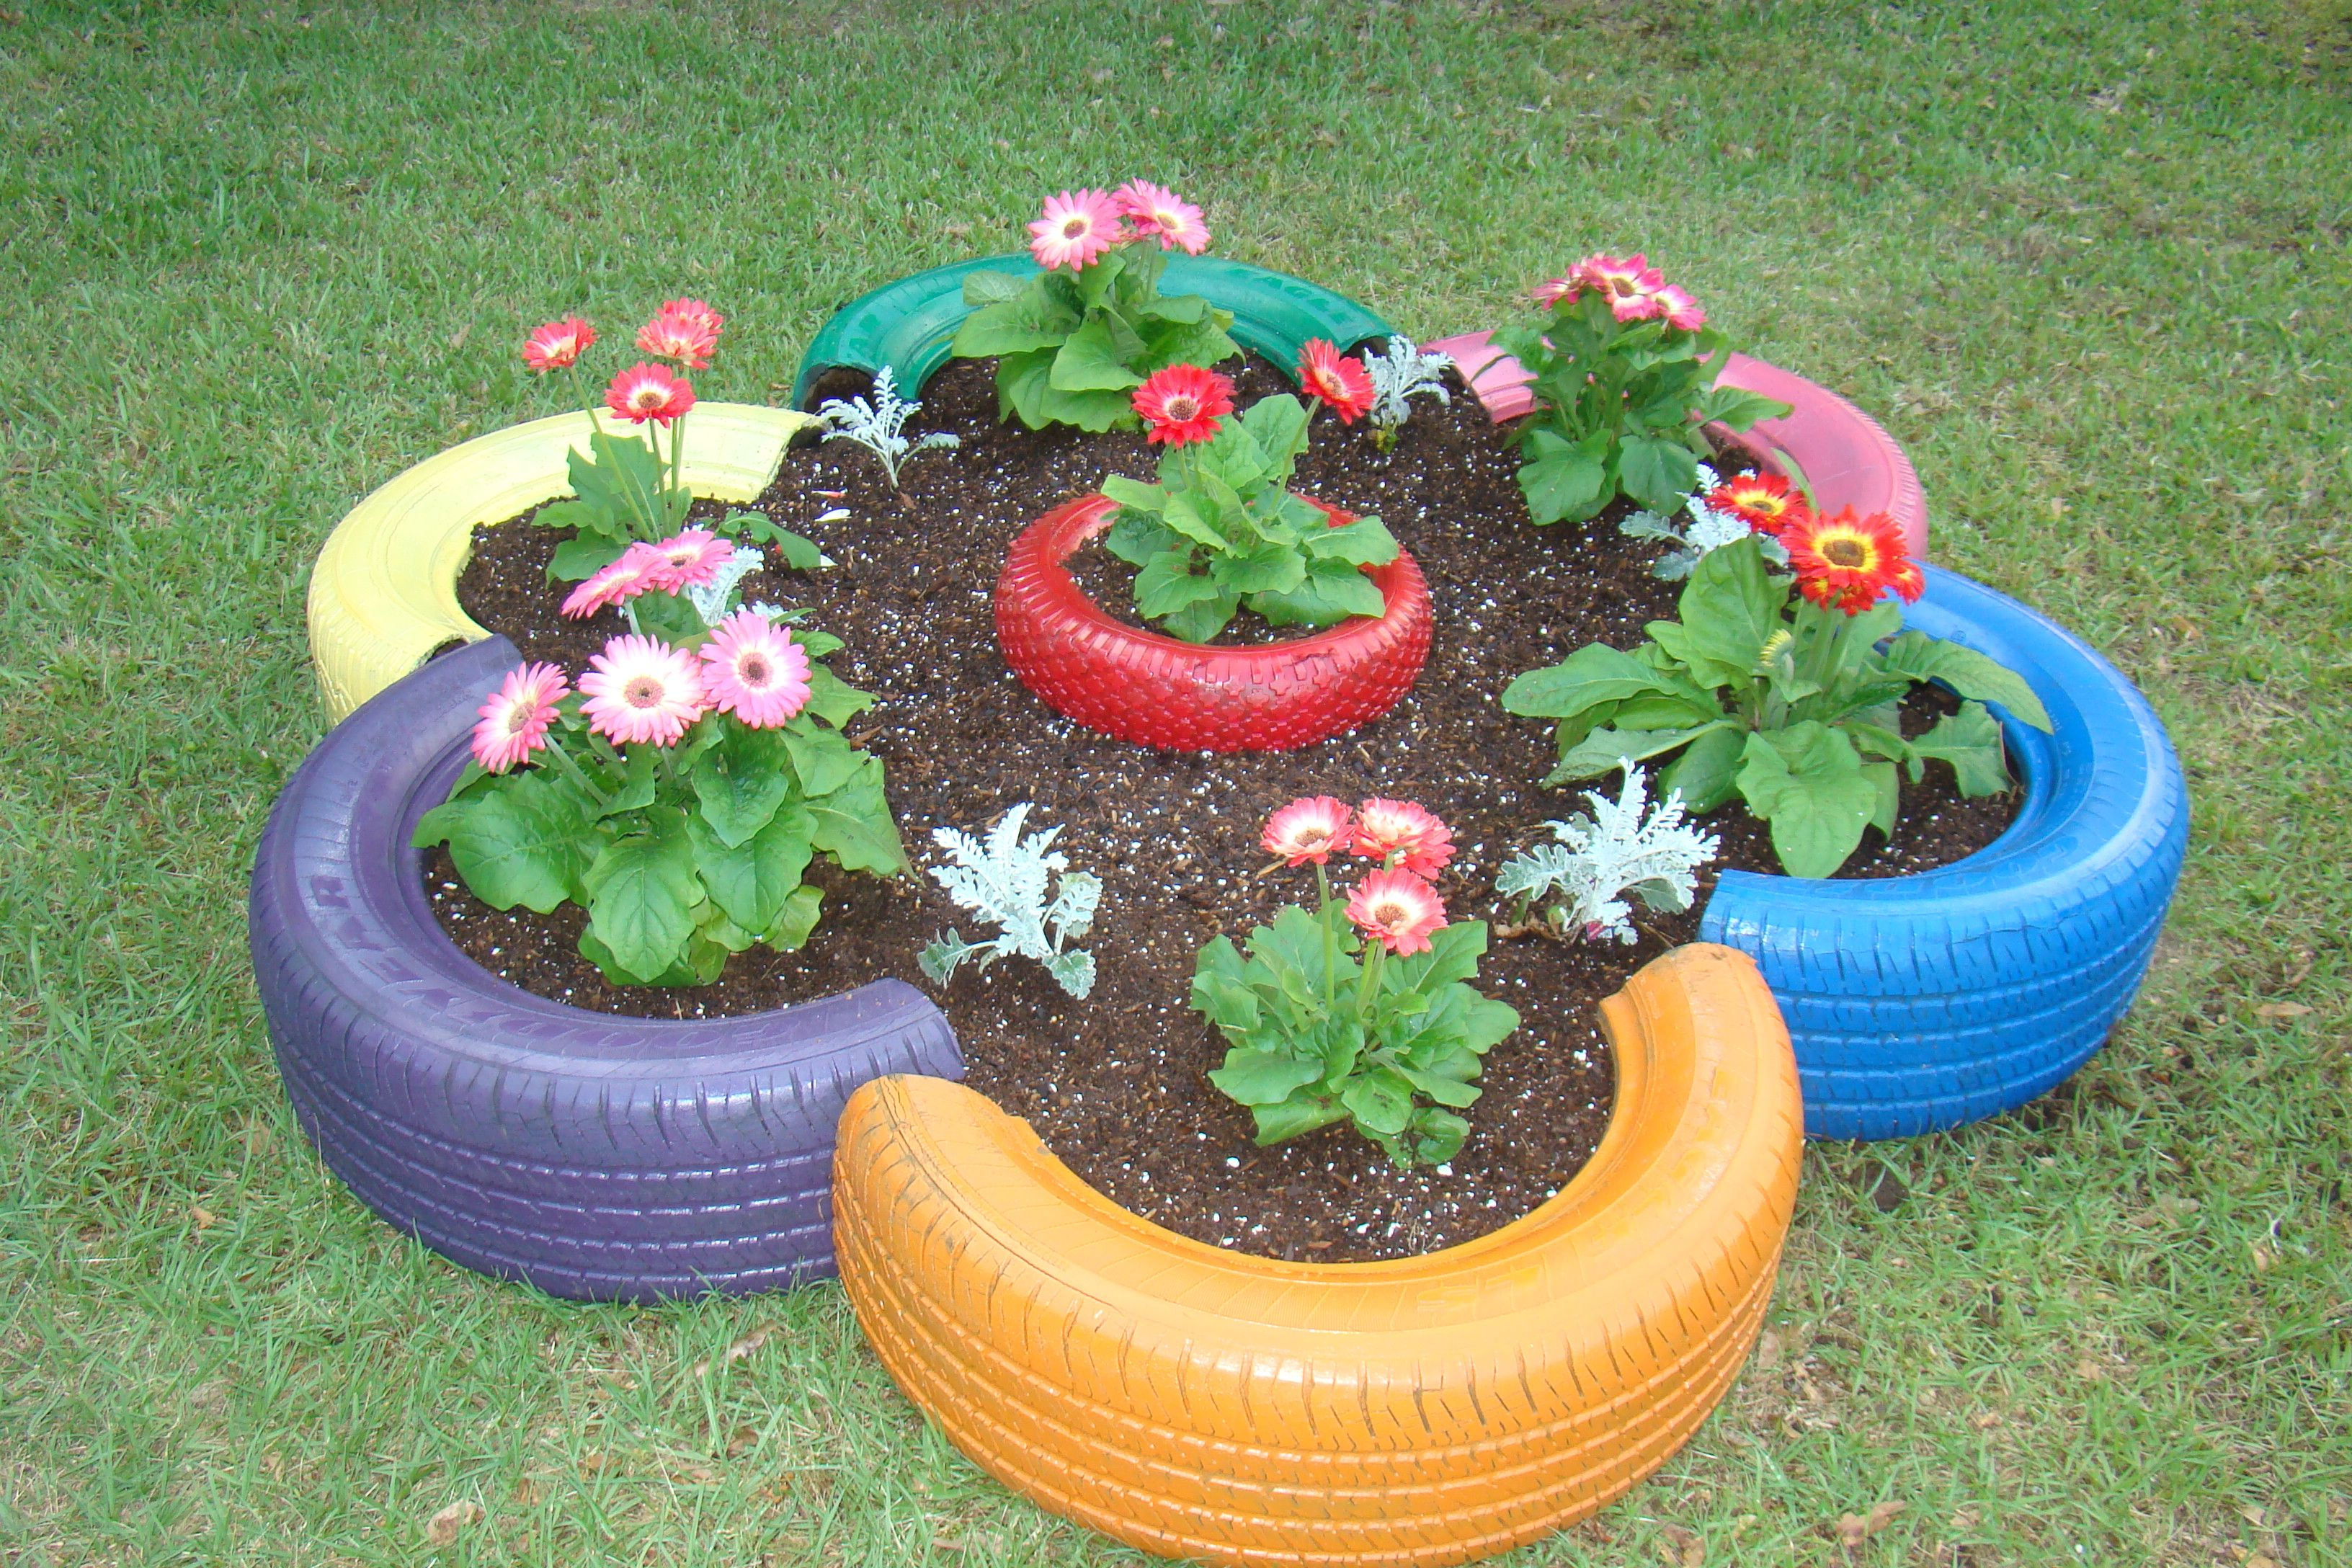 flower bed made from old tires and small tire in the center